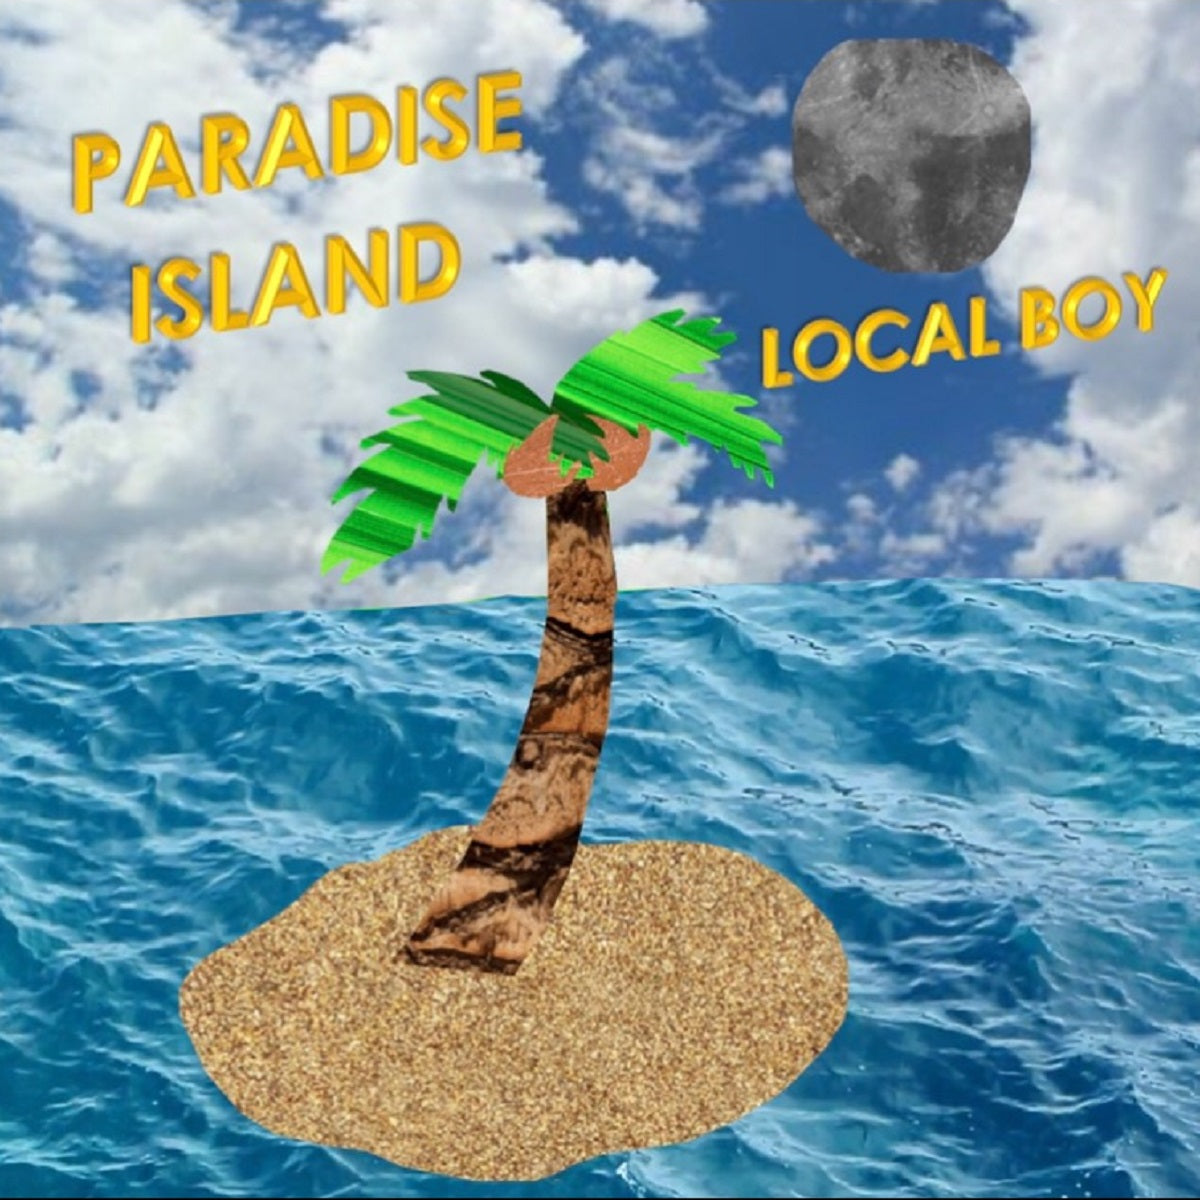 Review: Local Boy – 'Paradise Island'